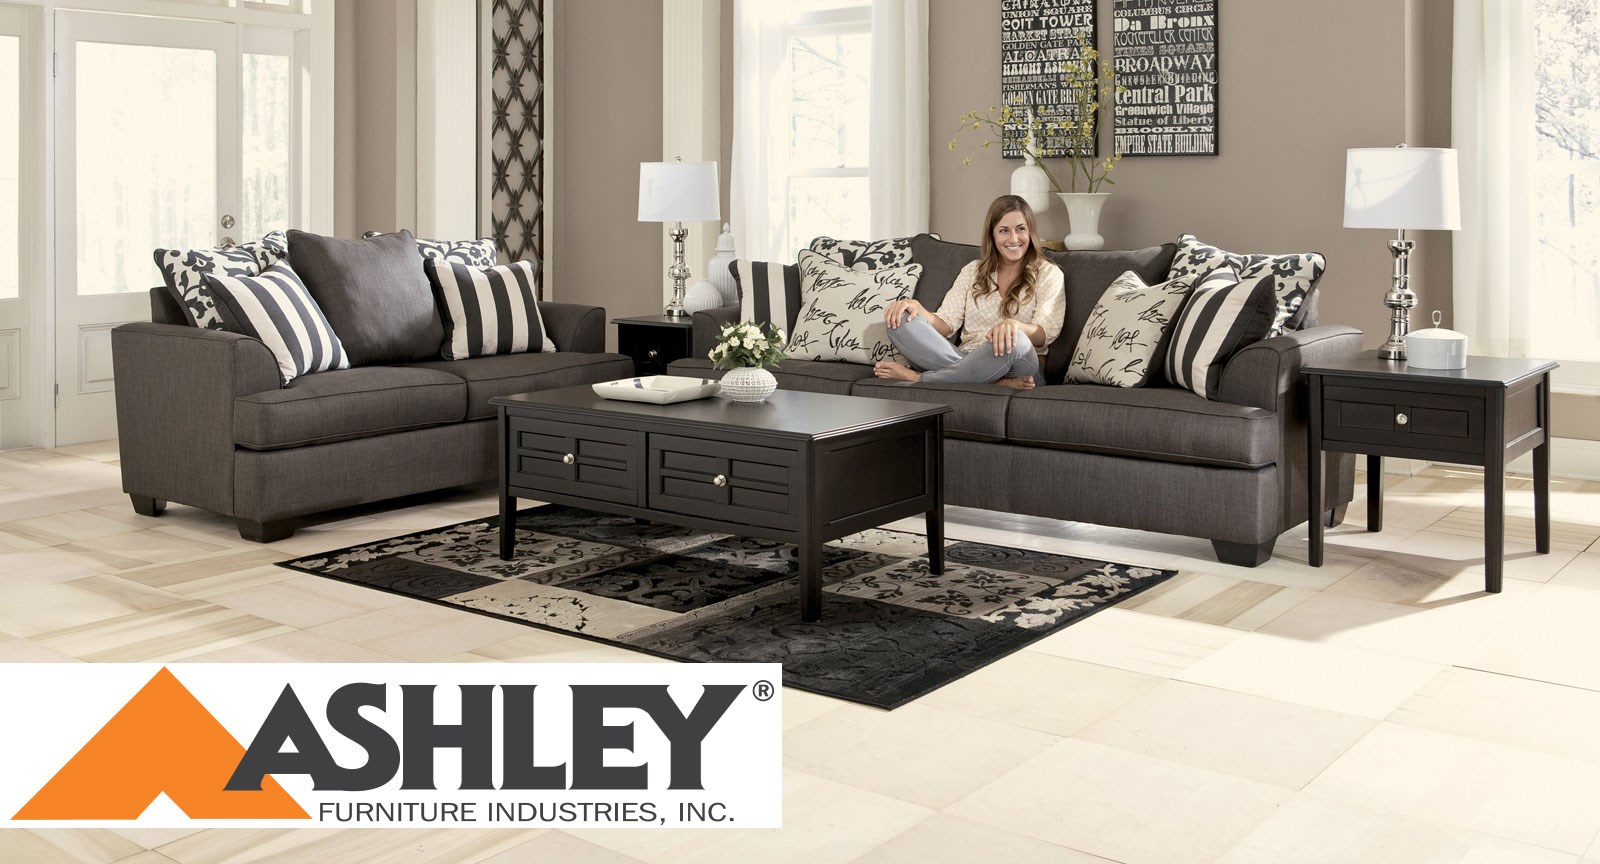 ashley furniture del sol phoenix glendale tempe ash header accent tables serving the scottsdale avondale peoria goodyear litchfield area low square coffee table long trestle thin